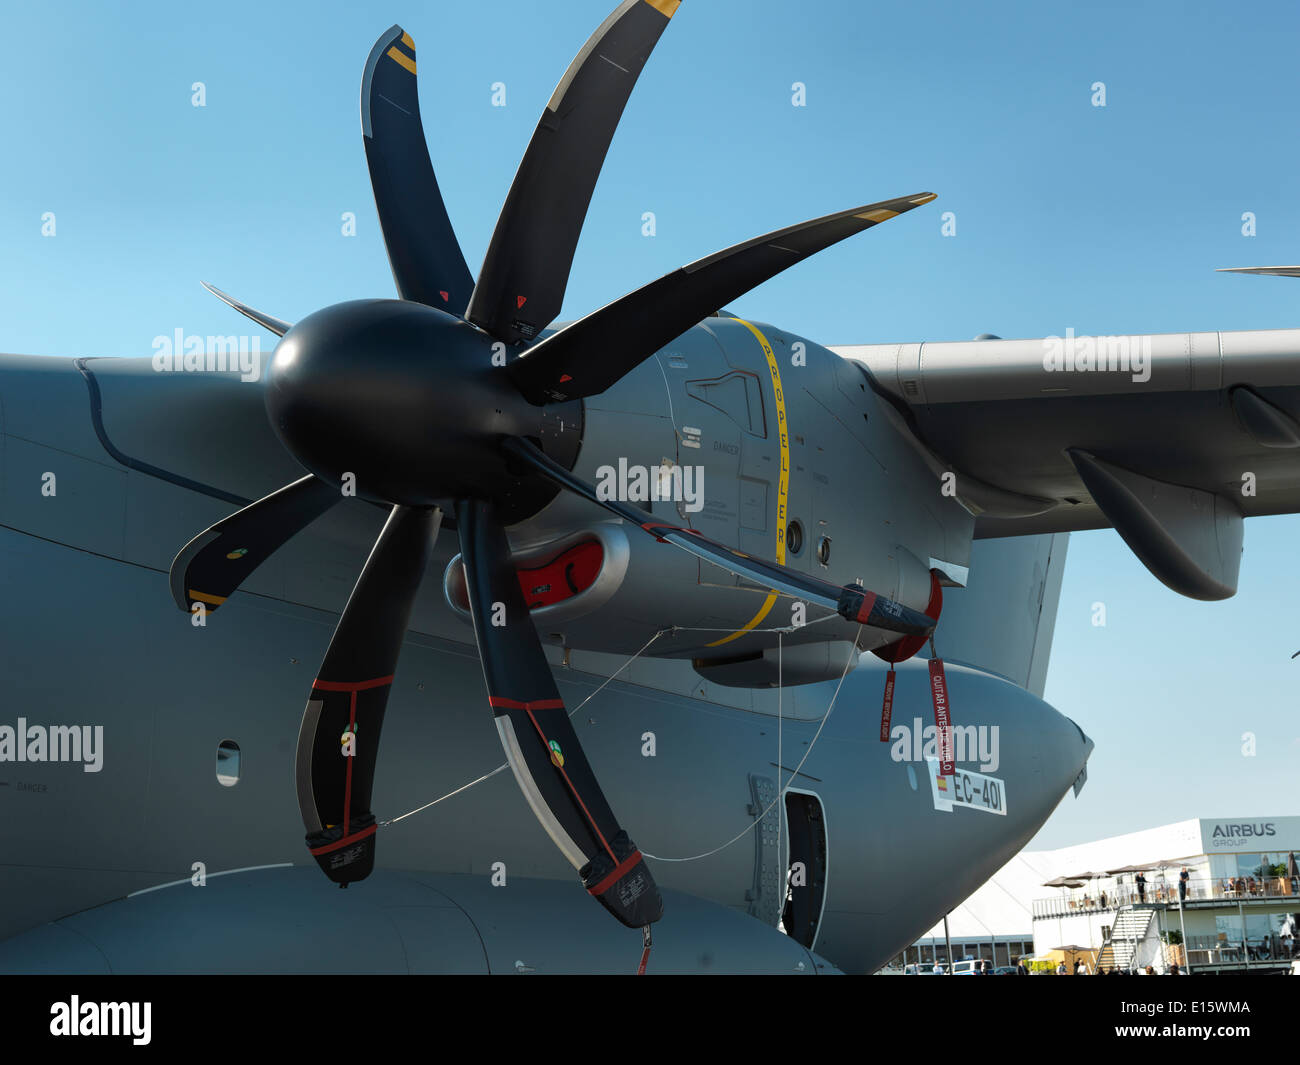 Airbus A400 turboprop engine. Digital mid format shot. - Stock Image